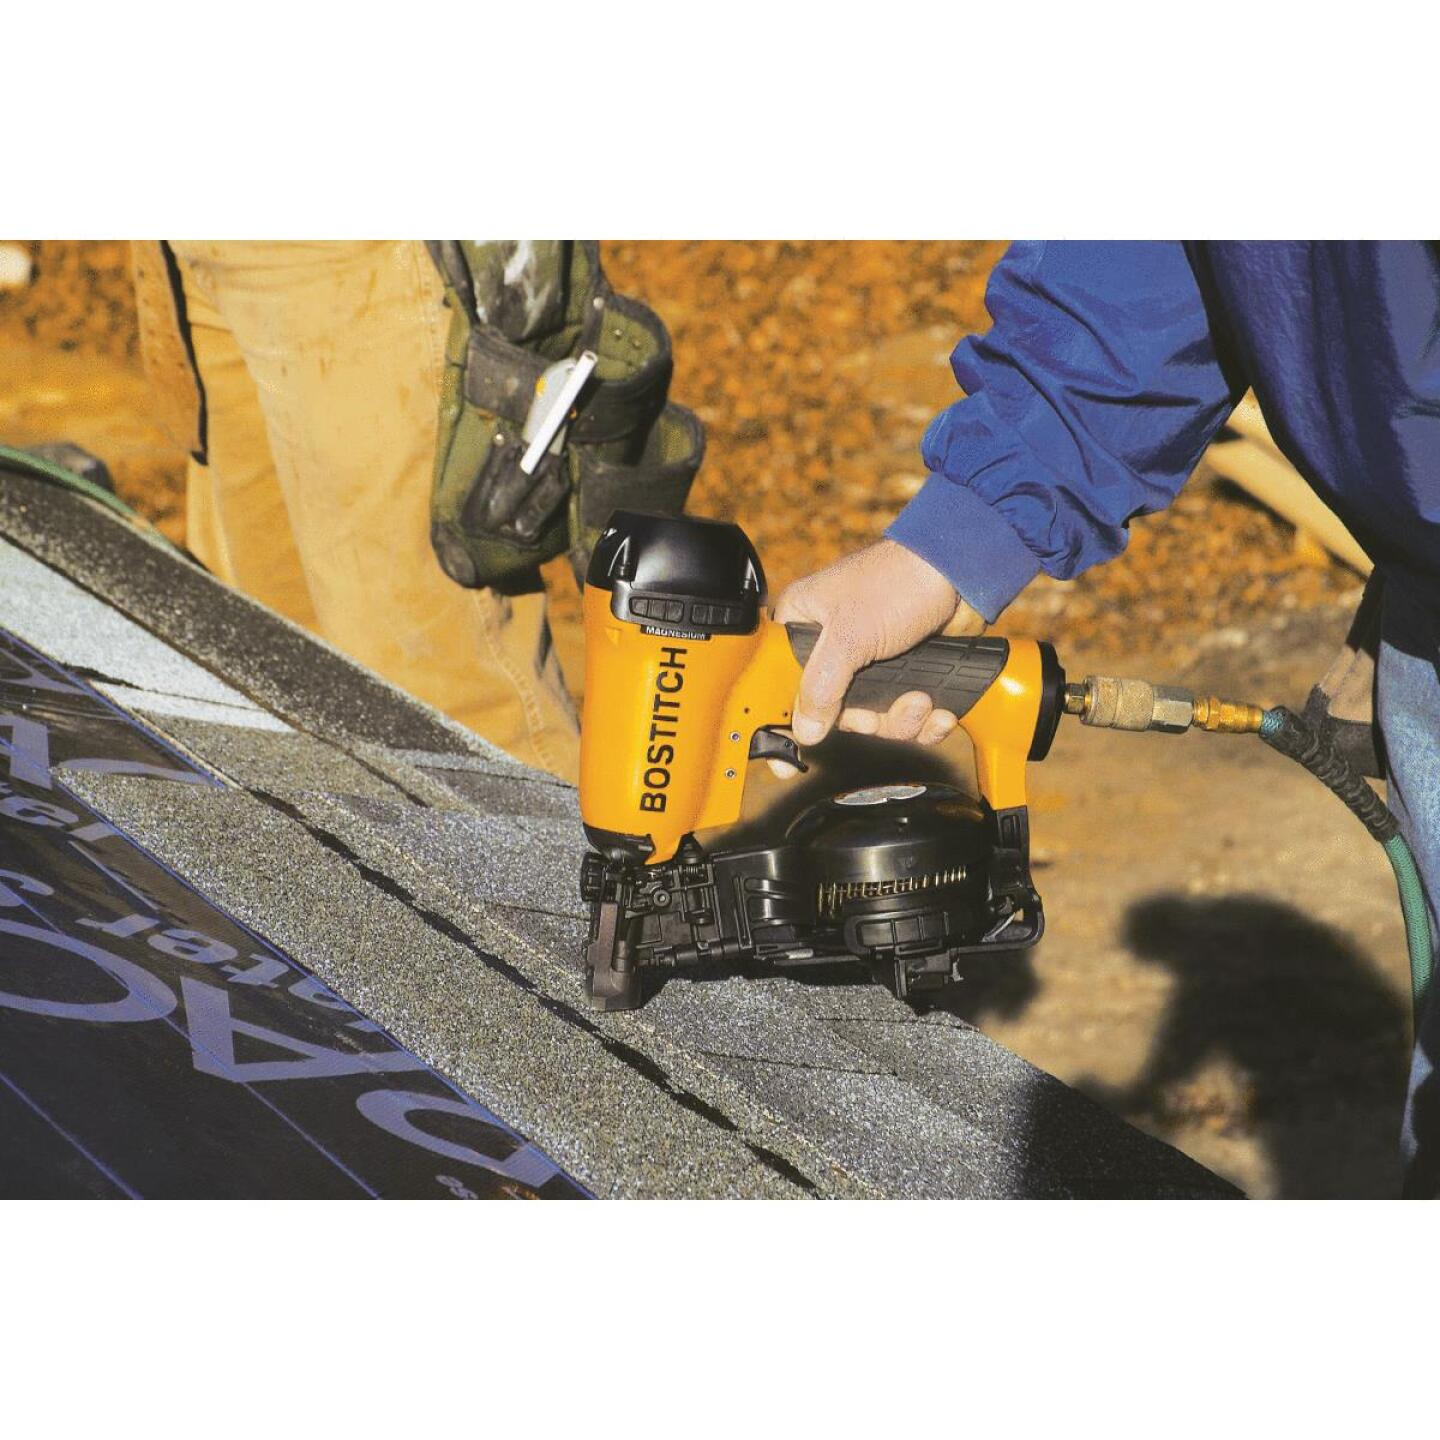 Bostitch 15 Degree 1-3/4 In. Coil Roofing Nailer Image 2